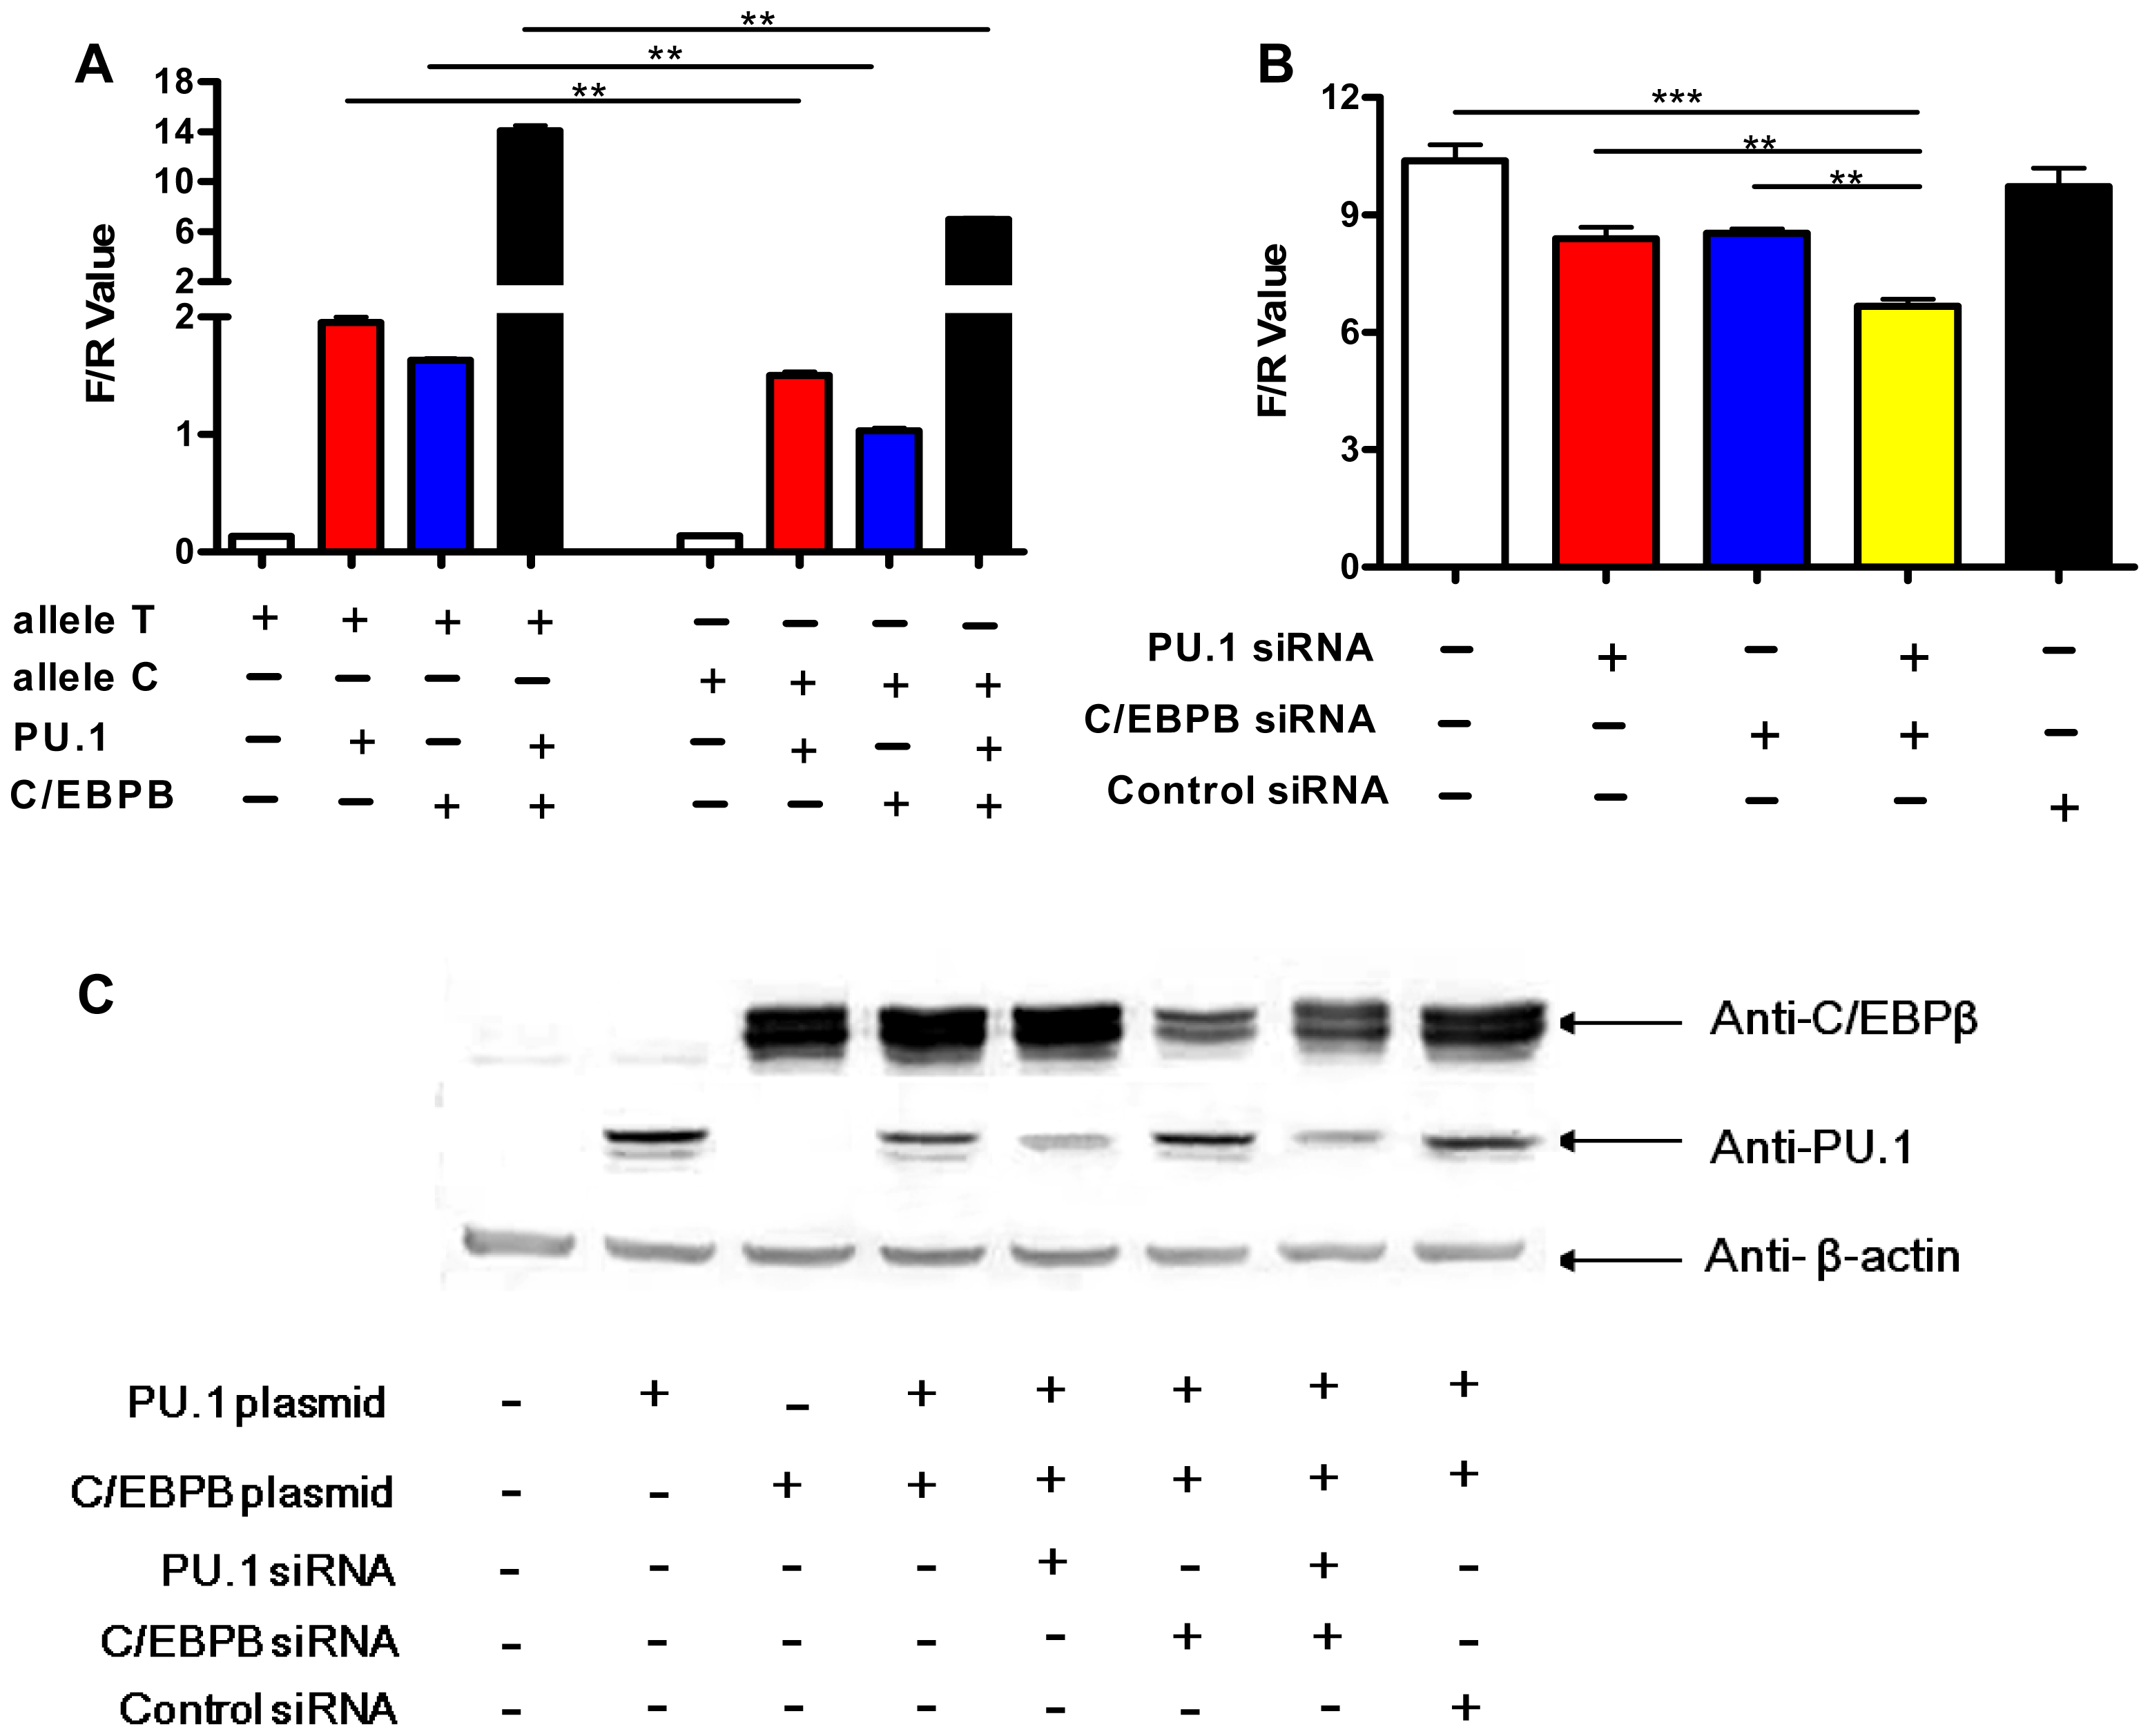 Allele-specific effects of rs1143627 are mediated through PU.1 and C/EBPβ.